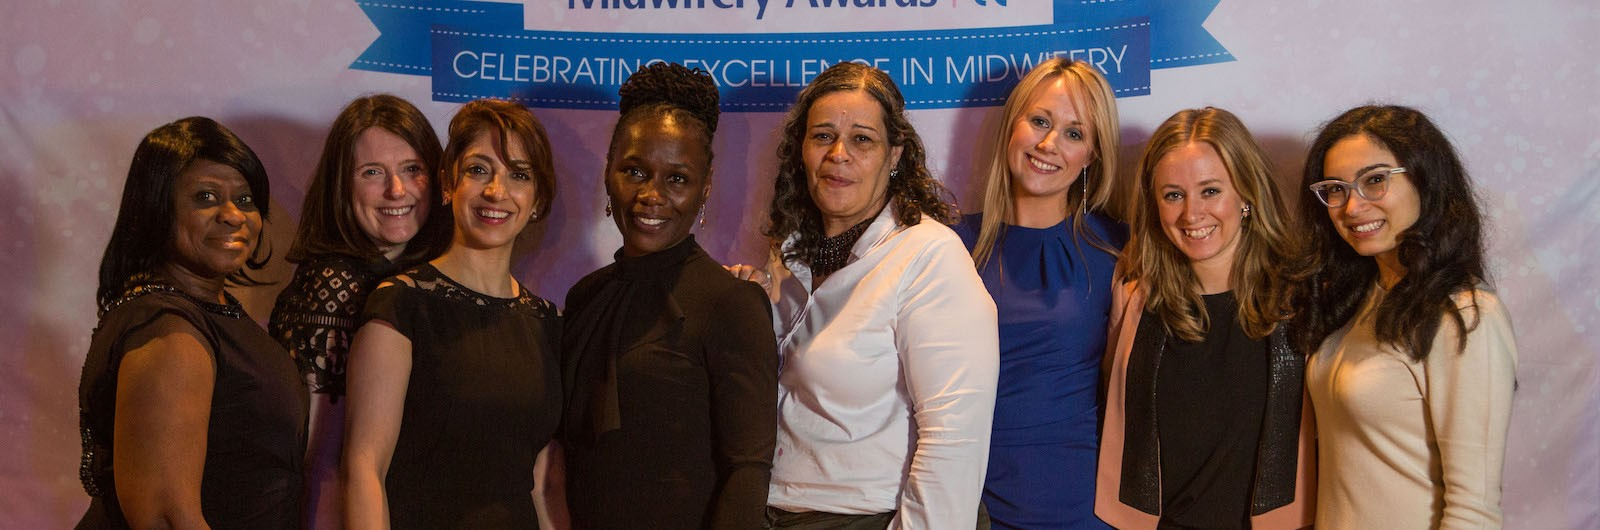 RCM members at the RCM Awards